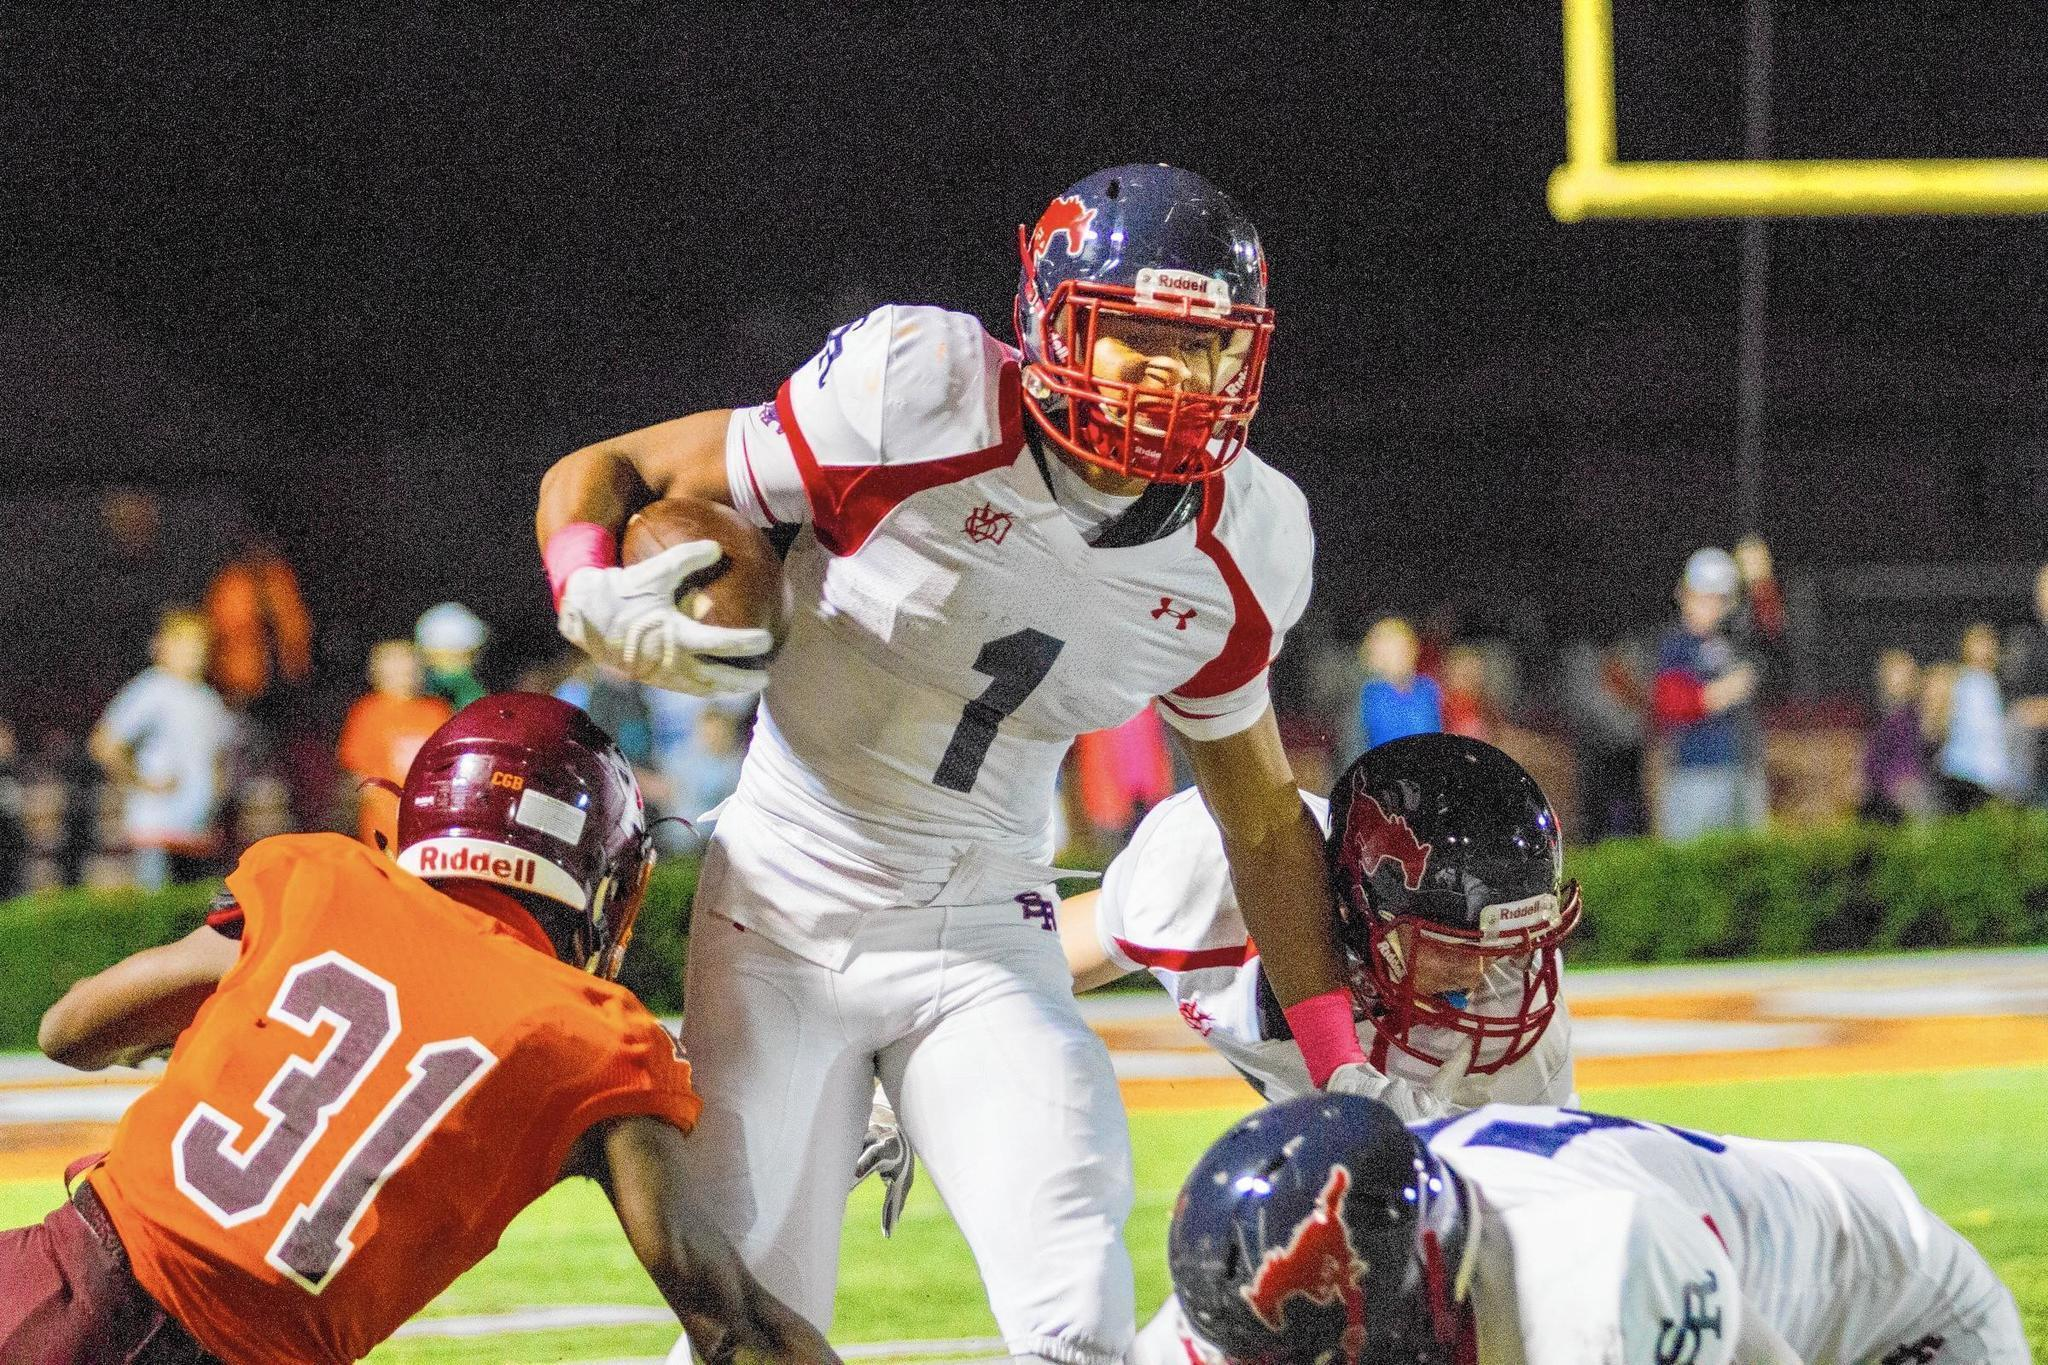 Ct-sta-football-st-rita-brother-rice-st-1015-20171013